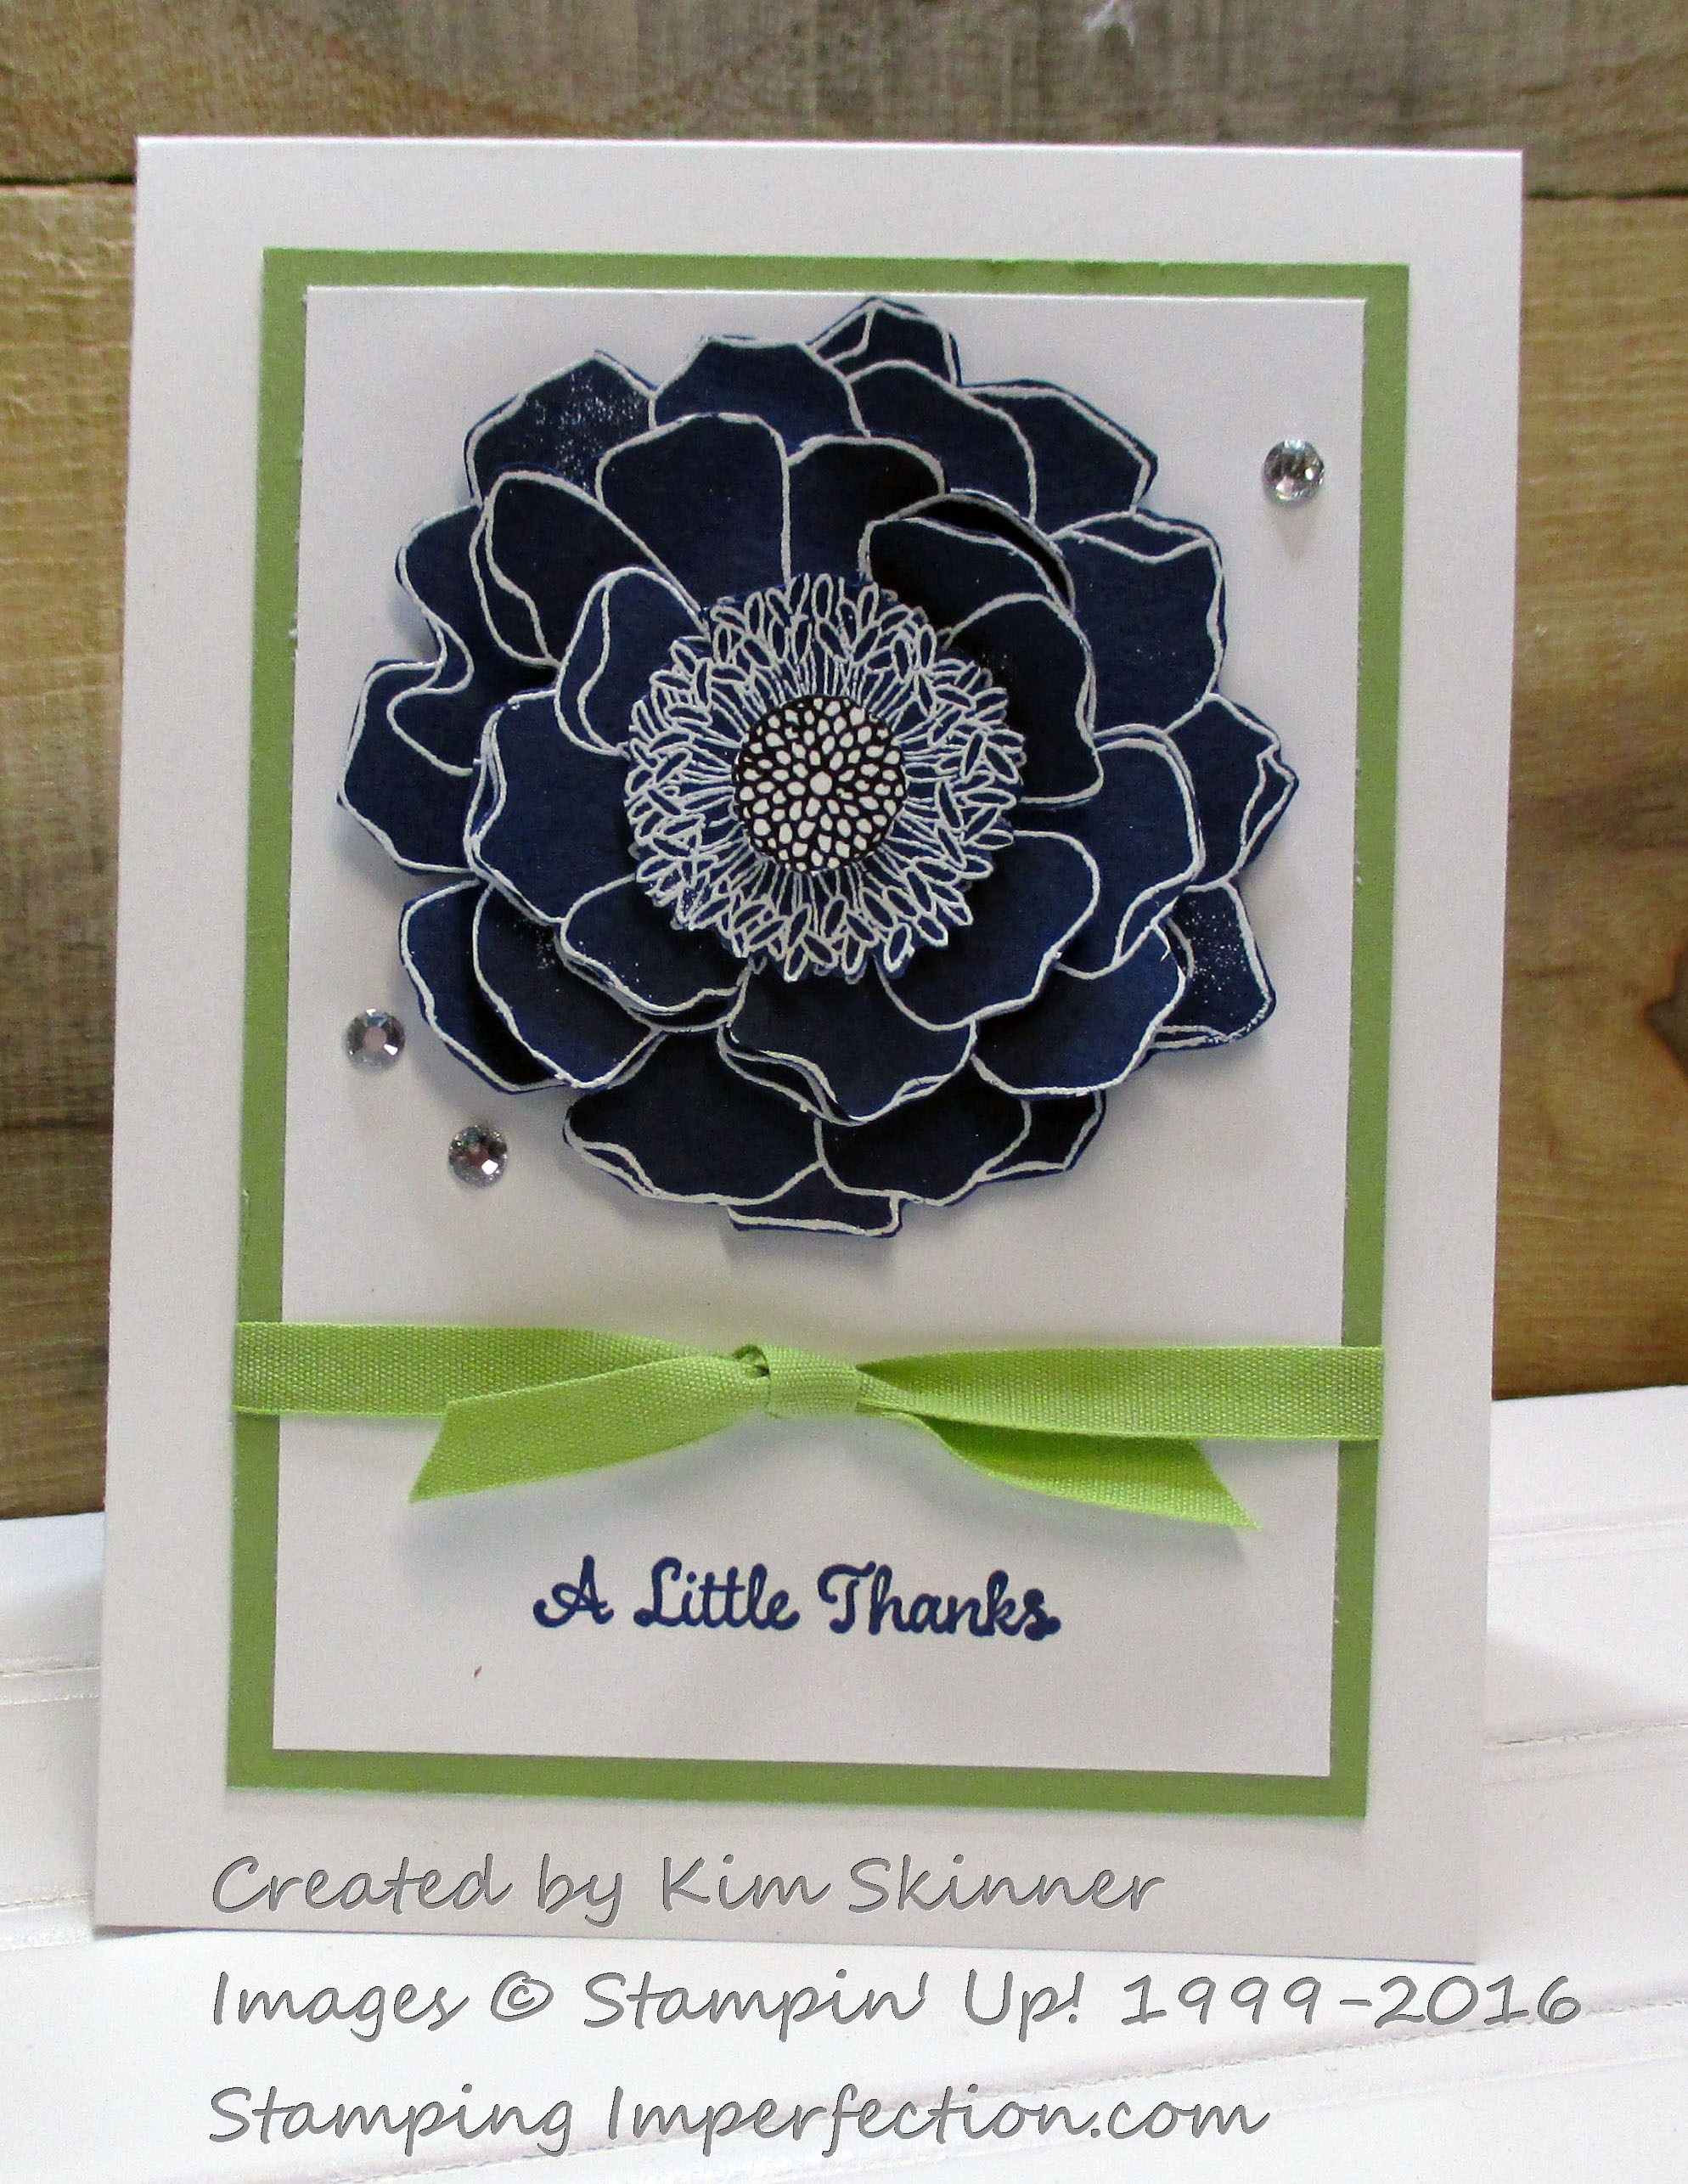 Stamping Imperfection Blended Blooms